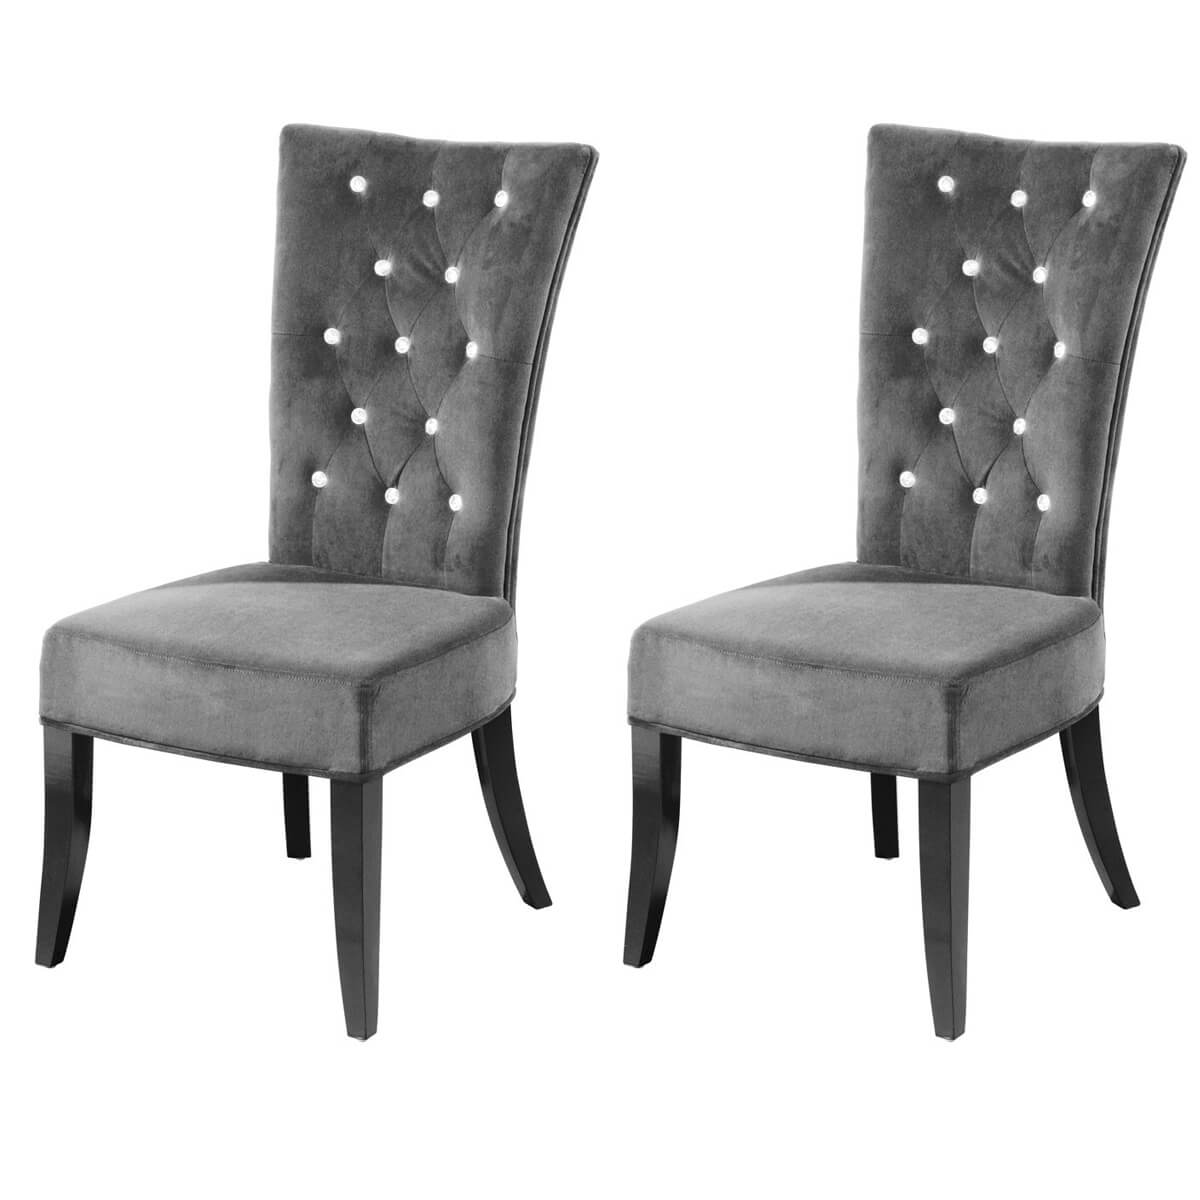 Grey Velvet Dining Chairs Radiance Grey Velvet Dining Chairs Diamante Buttoned Fads